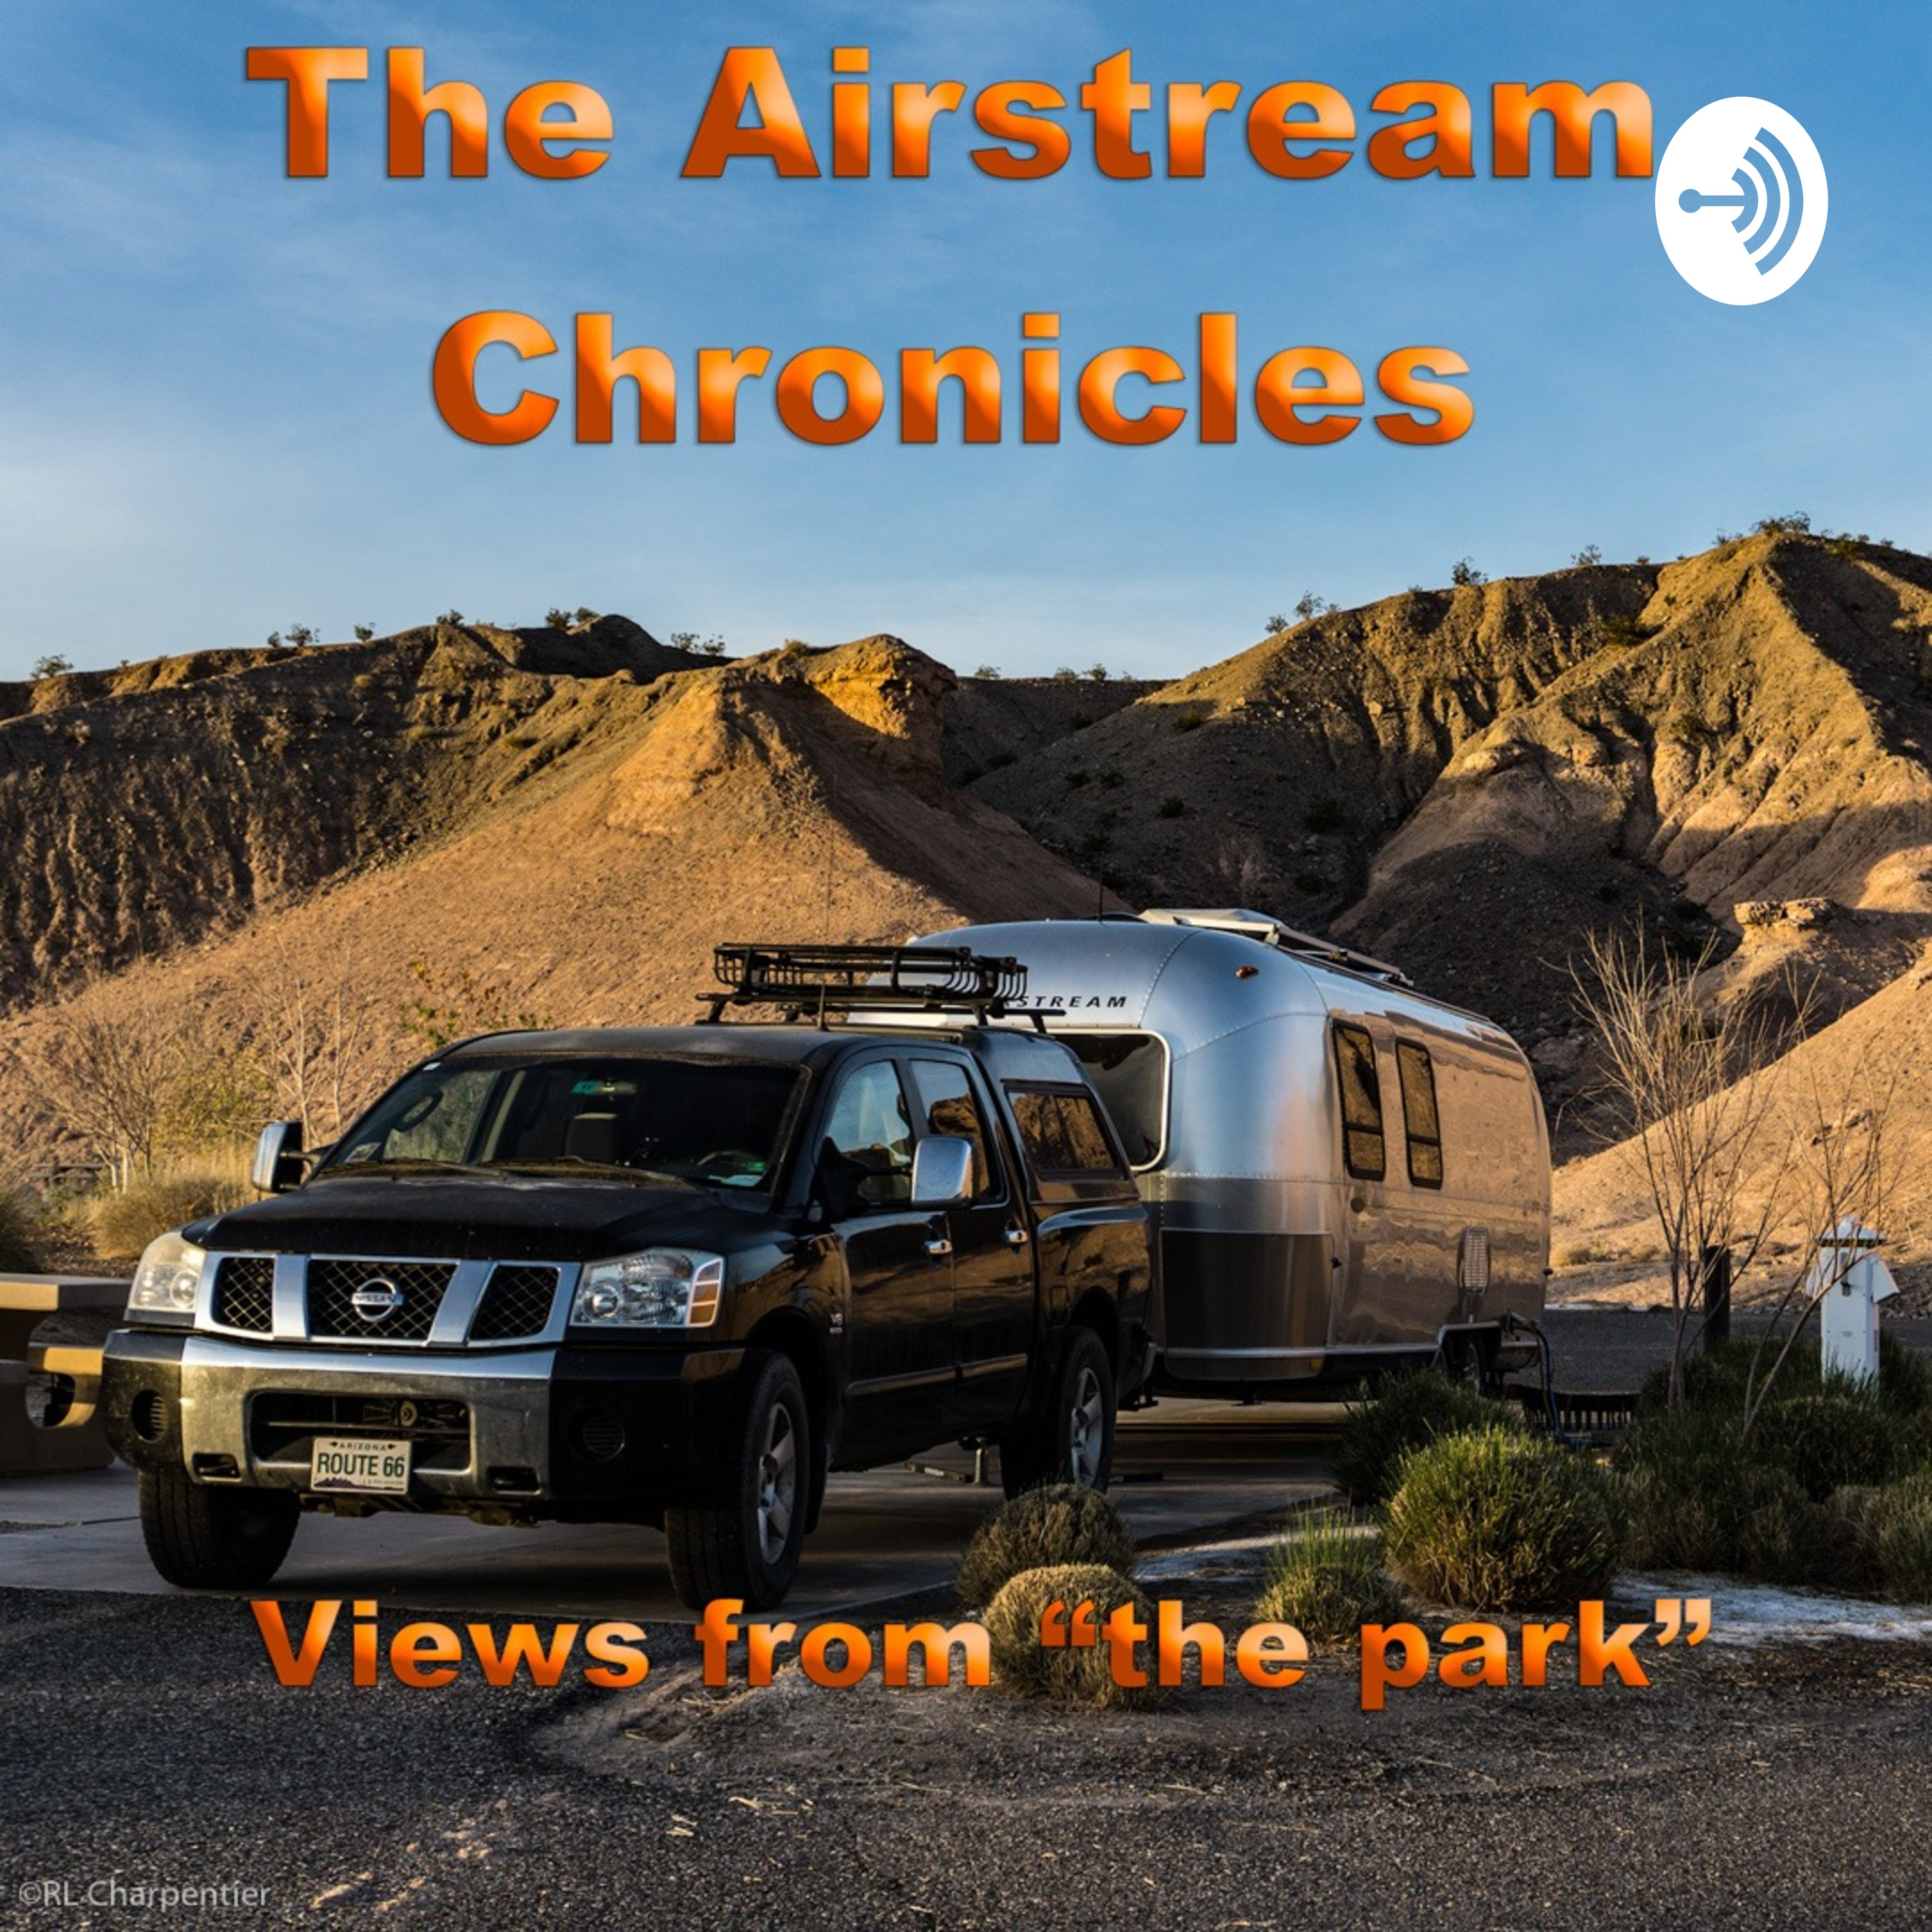 The Airstream Chronicles | Listen via Stitcher for Podcasts